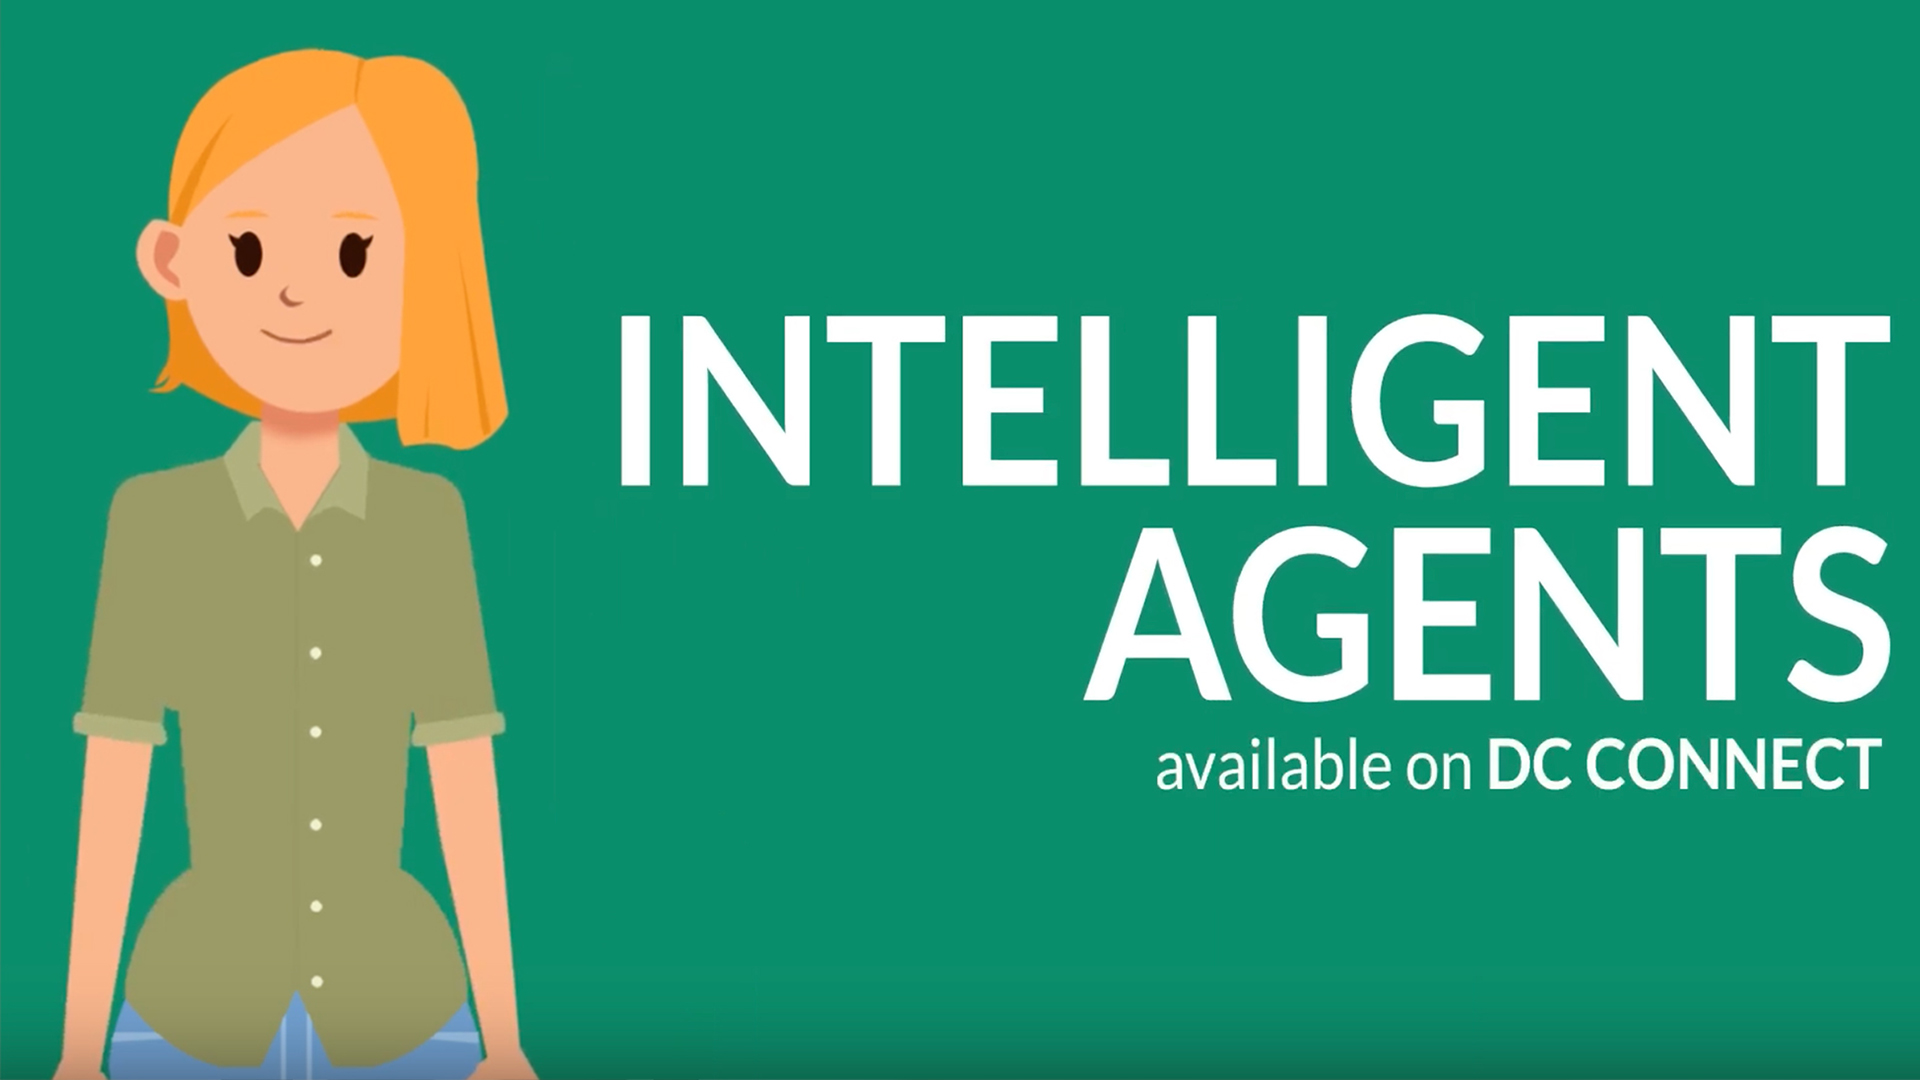 Intelligent Agent graphic character standing beside text